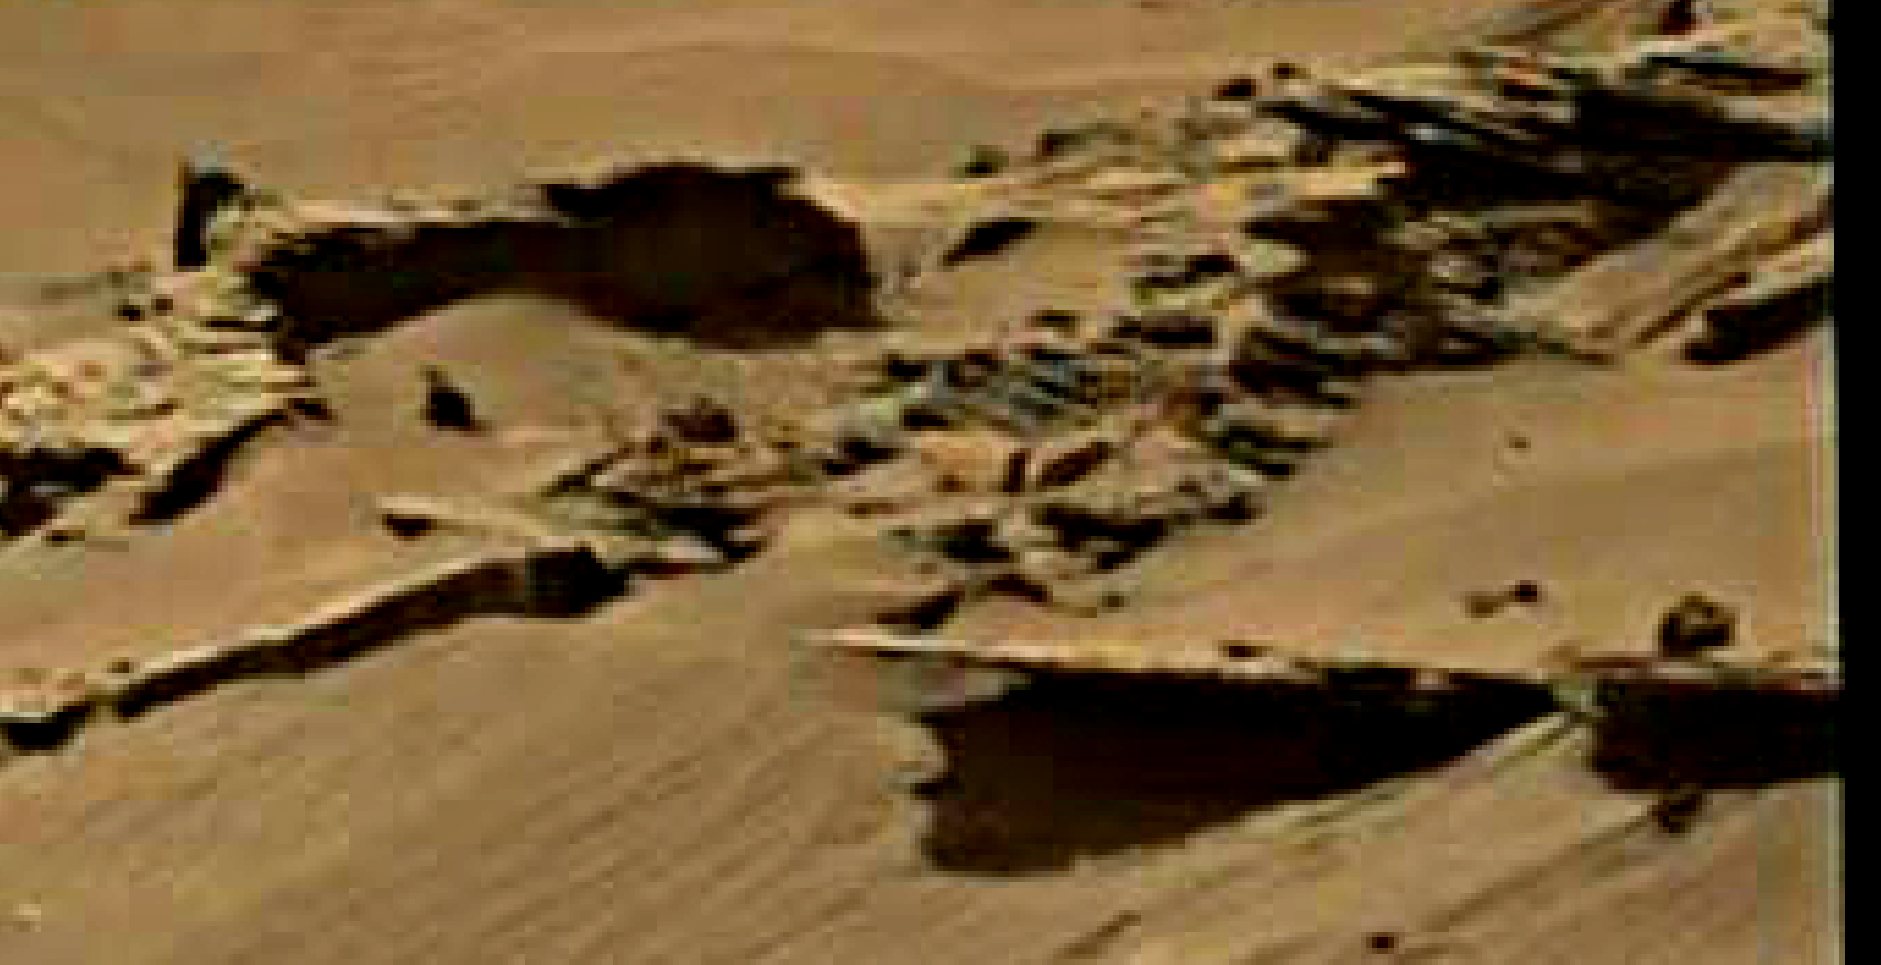 mars sol 1344 anomaly-artifacts 5 was life on mars